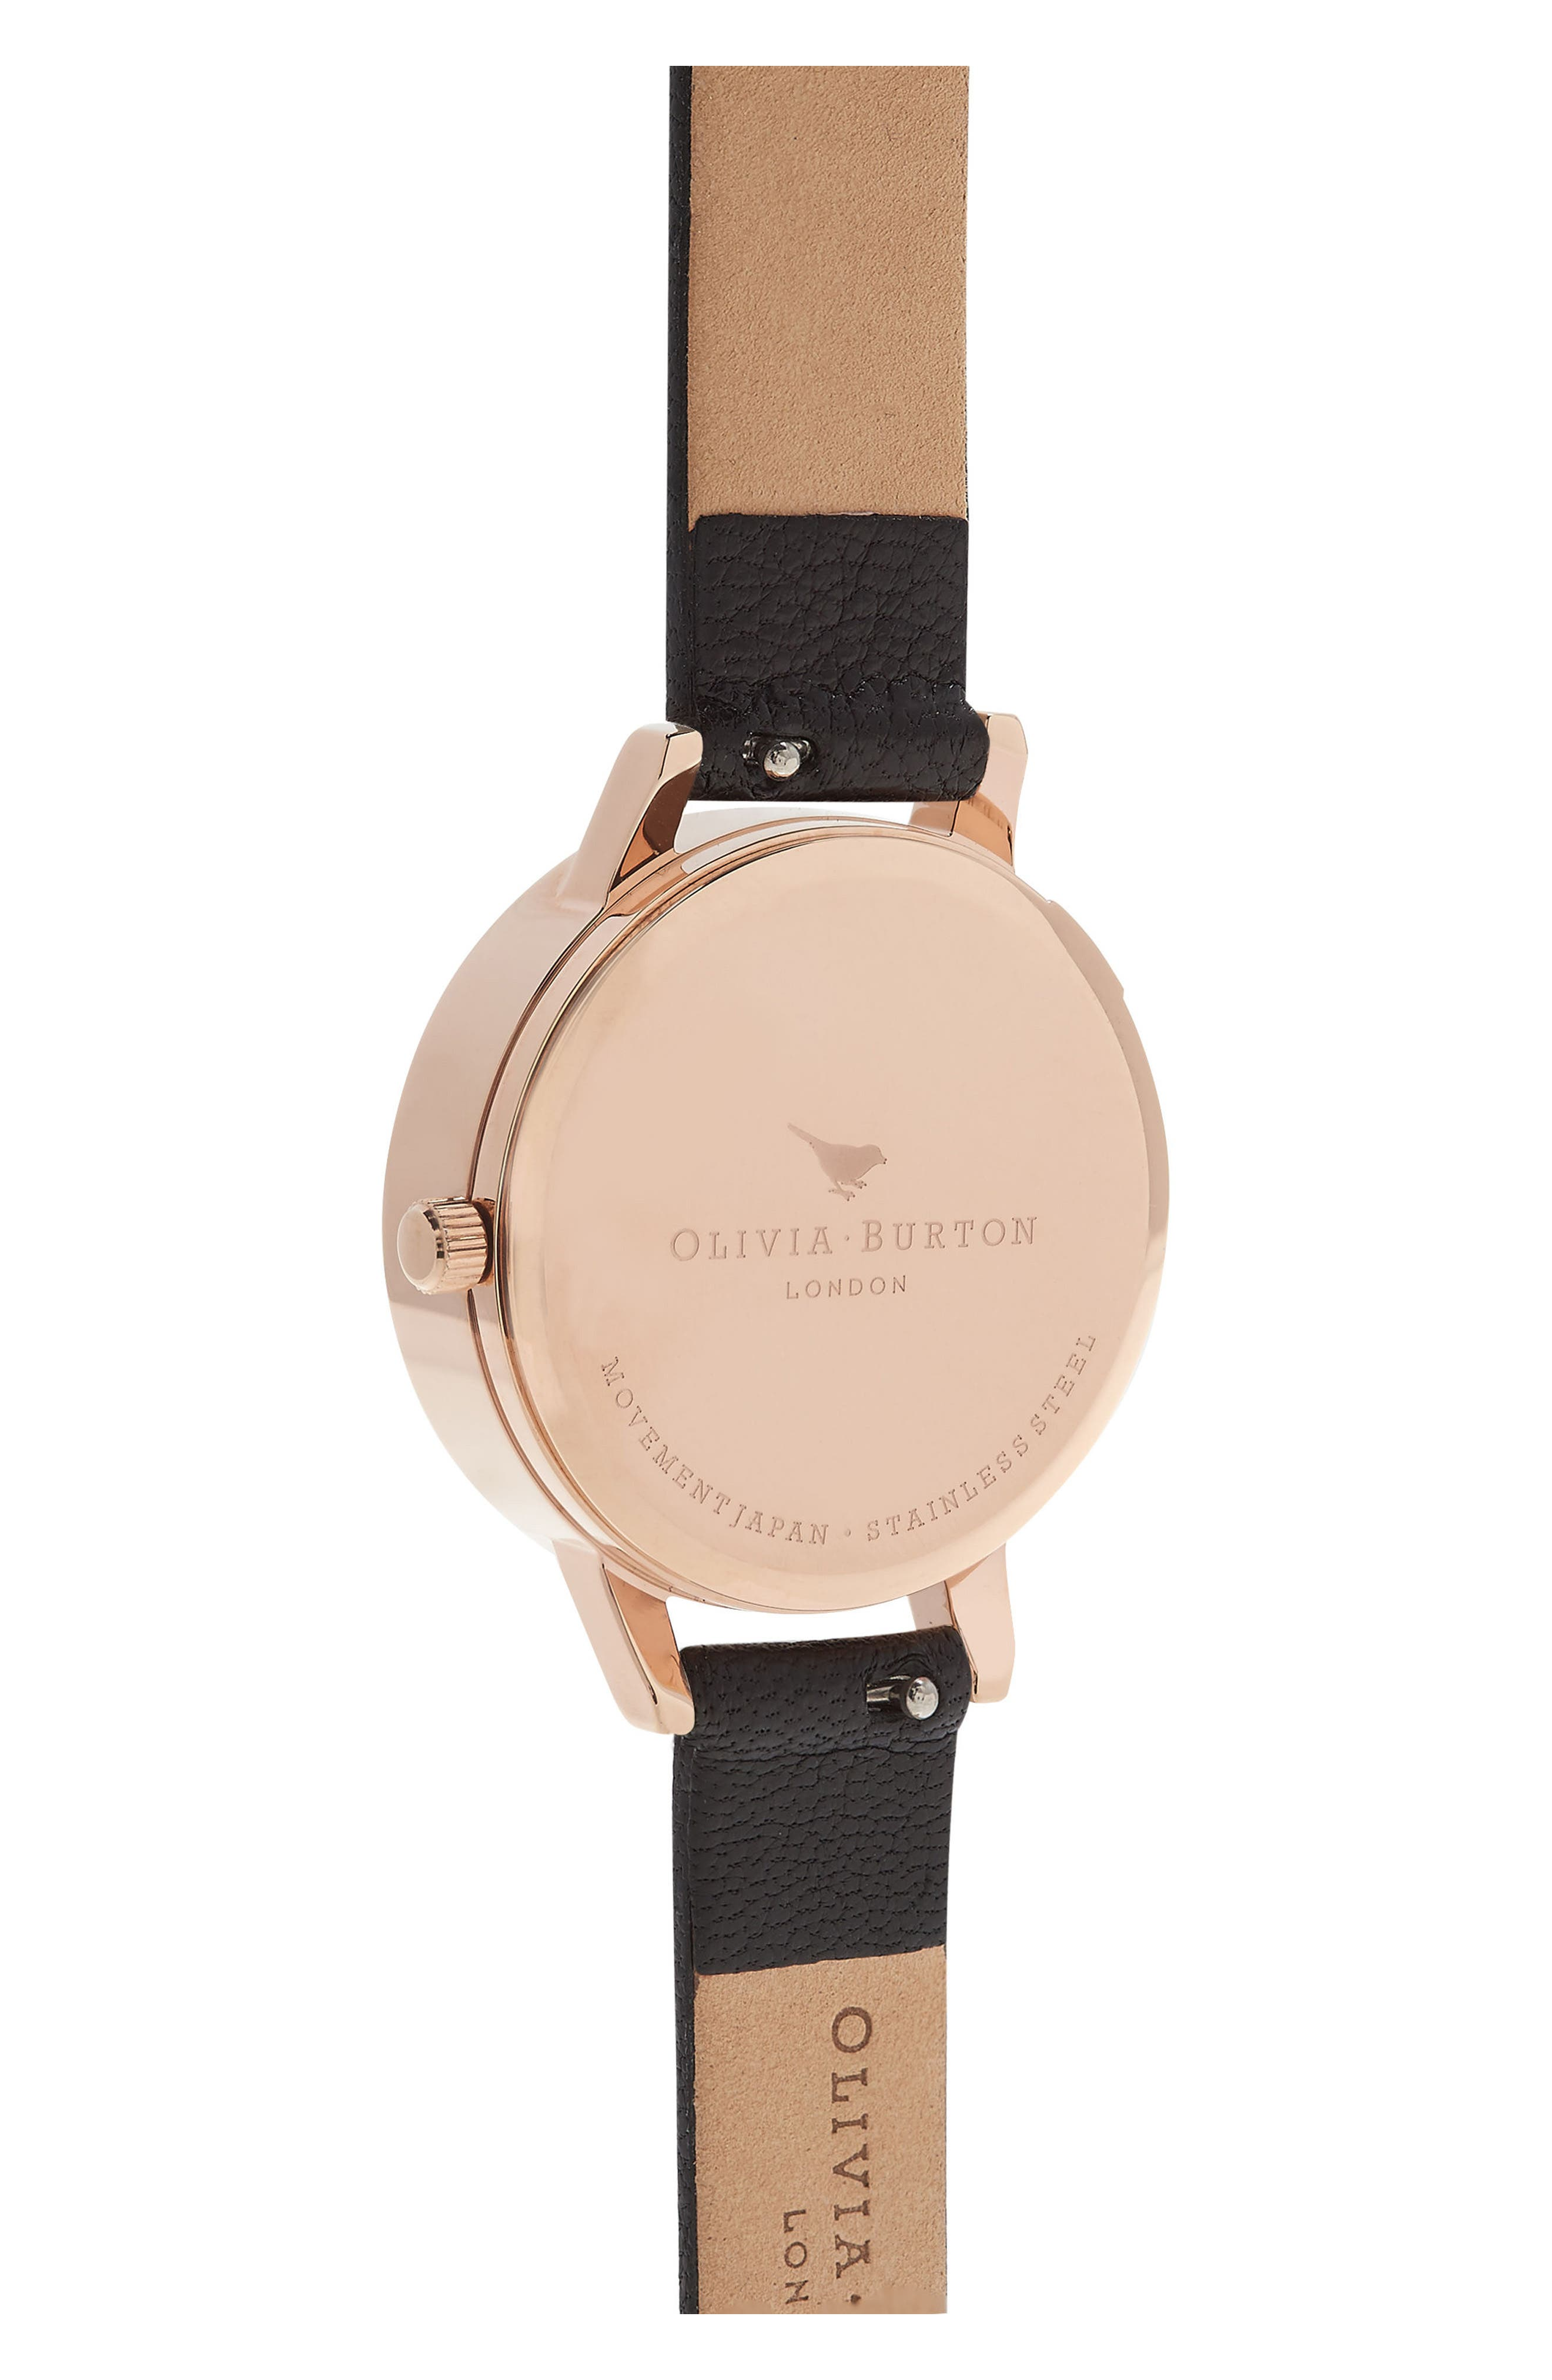 Dancing Daisy Leather Strap Watch, 30mm,                             Alternate thumbnail 3, color,                             Black/ Floral/ Rose Gold